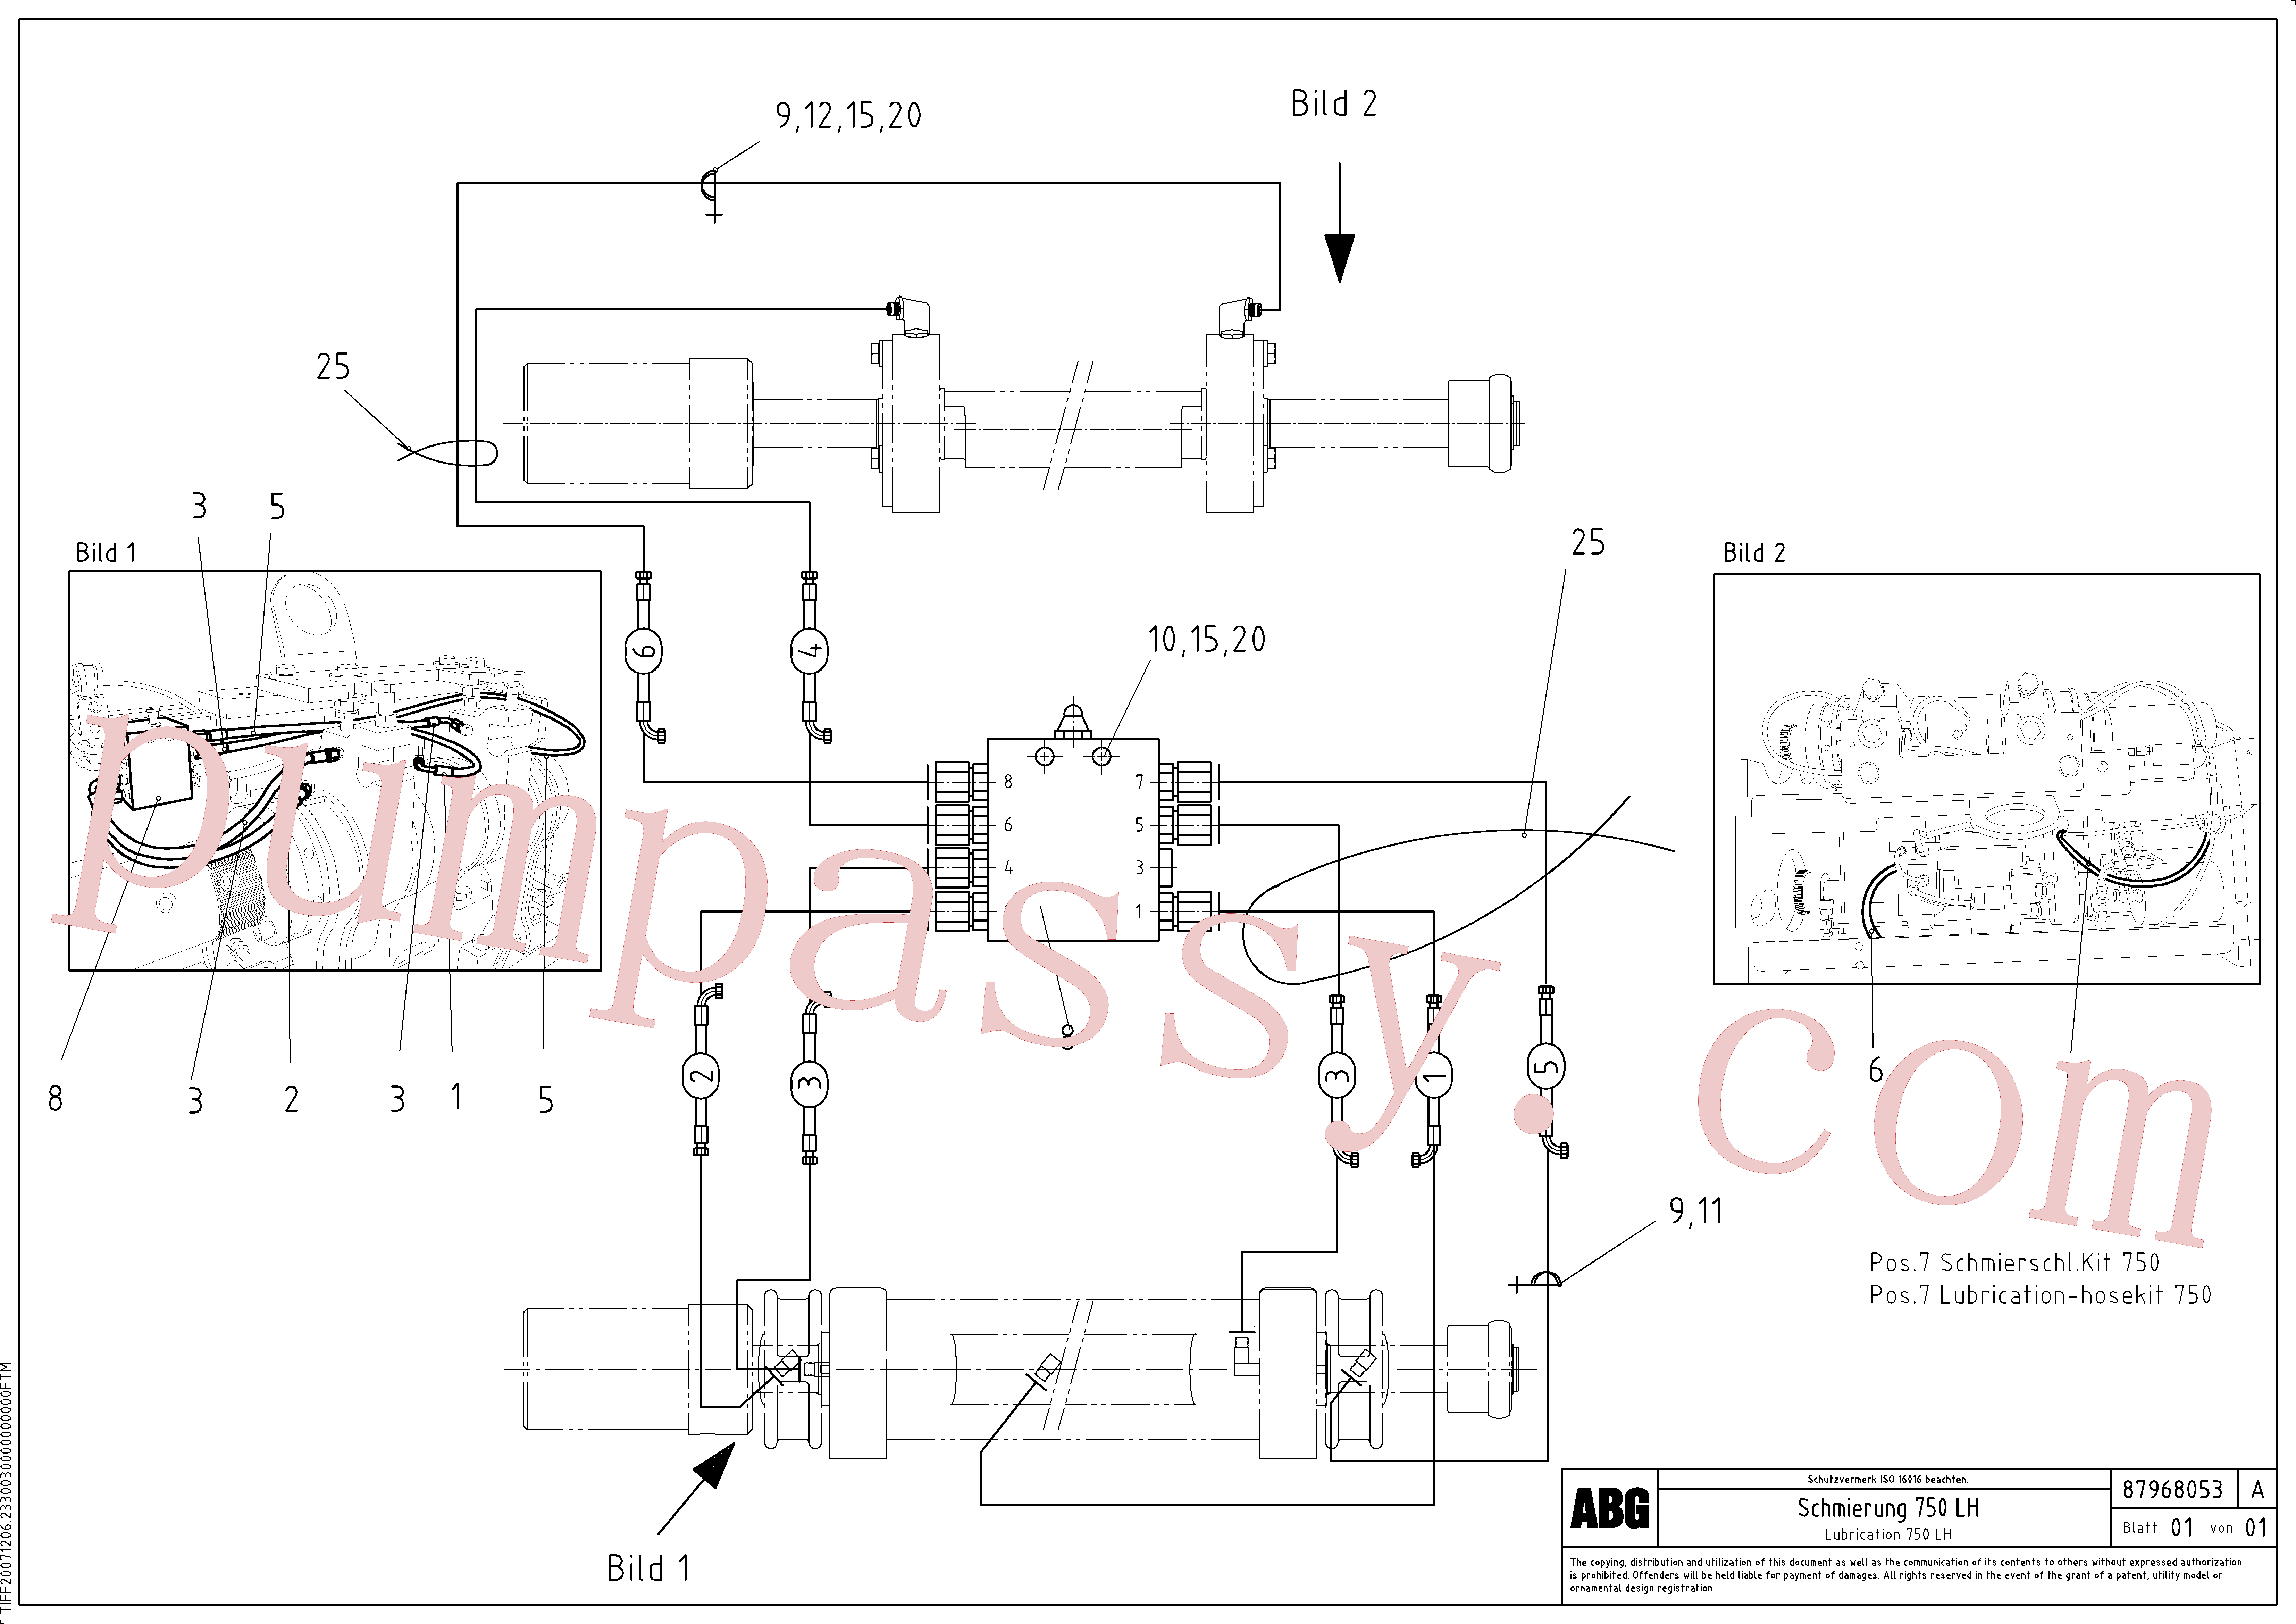 RM87968194 for Volvo Lubrication hose kit for extension, Lubrication for extension(1048080 assembly)